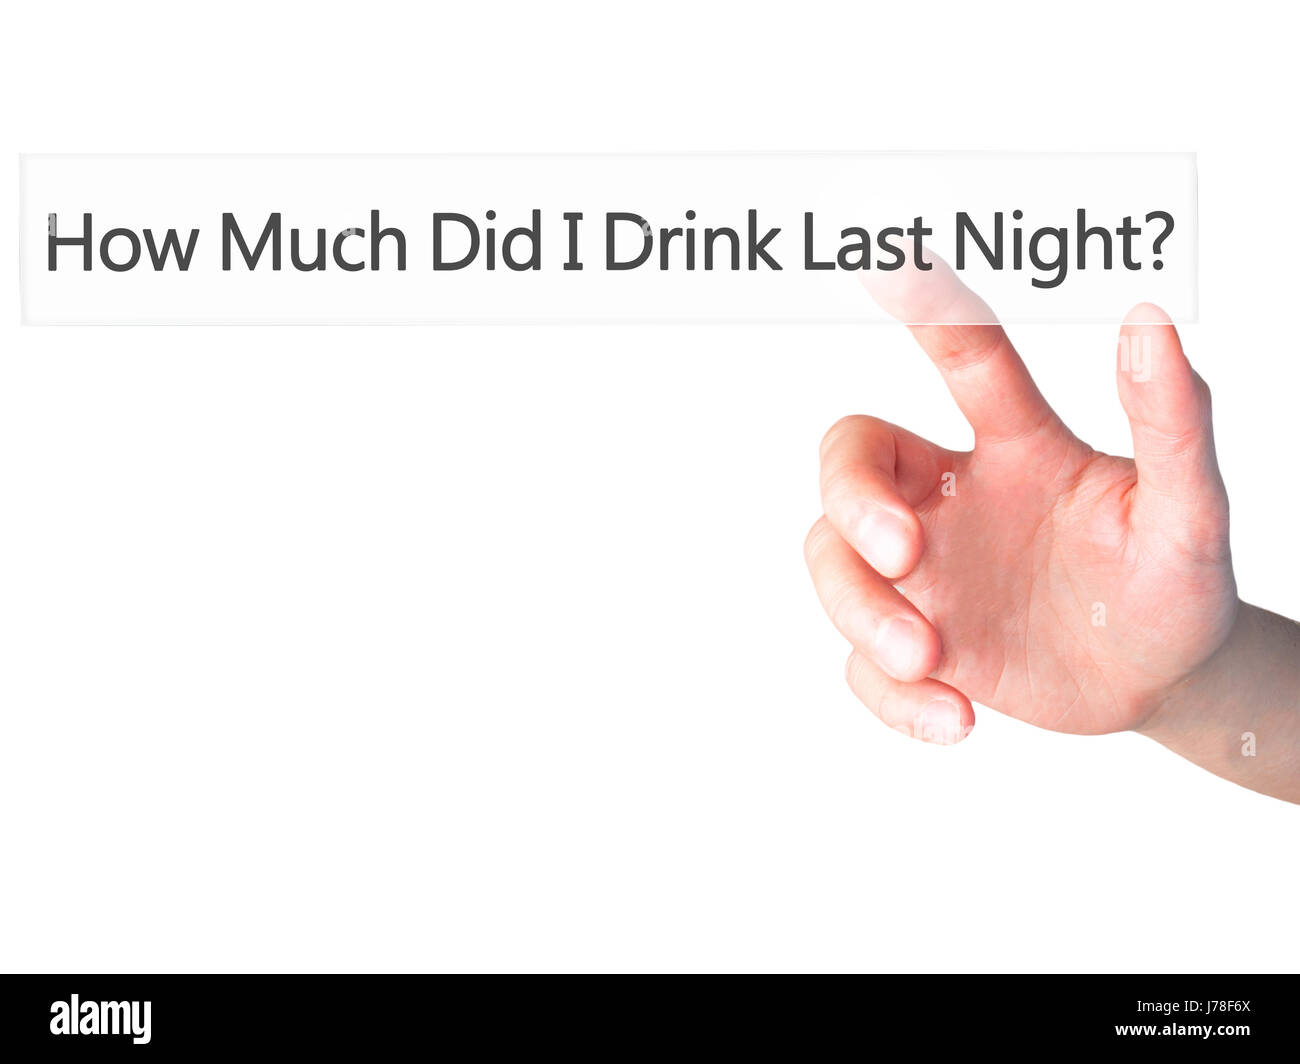 How Much Did I Drink Last Night - Hand pressing a button on blurred background concept . Business, technology, internet - Stock Image